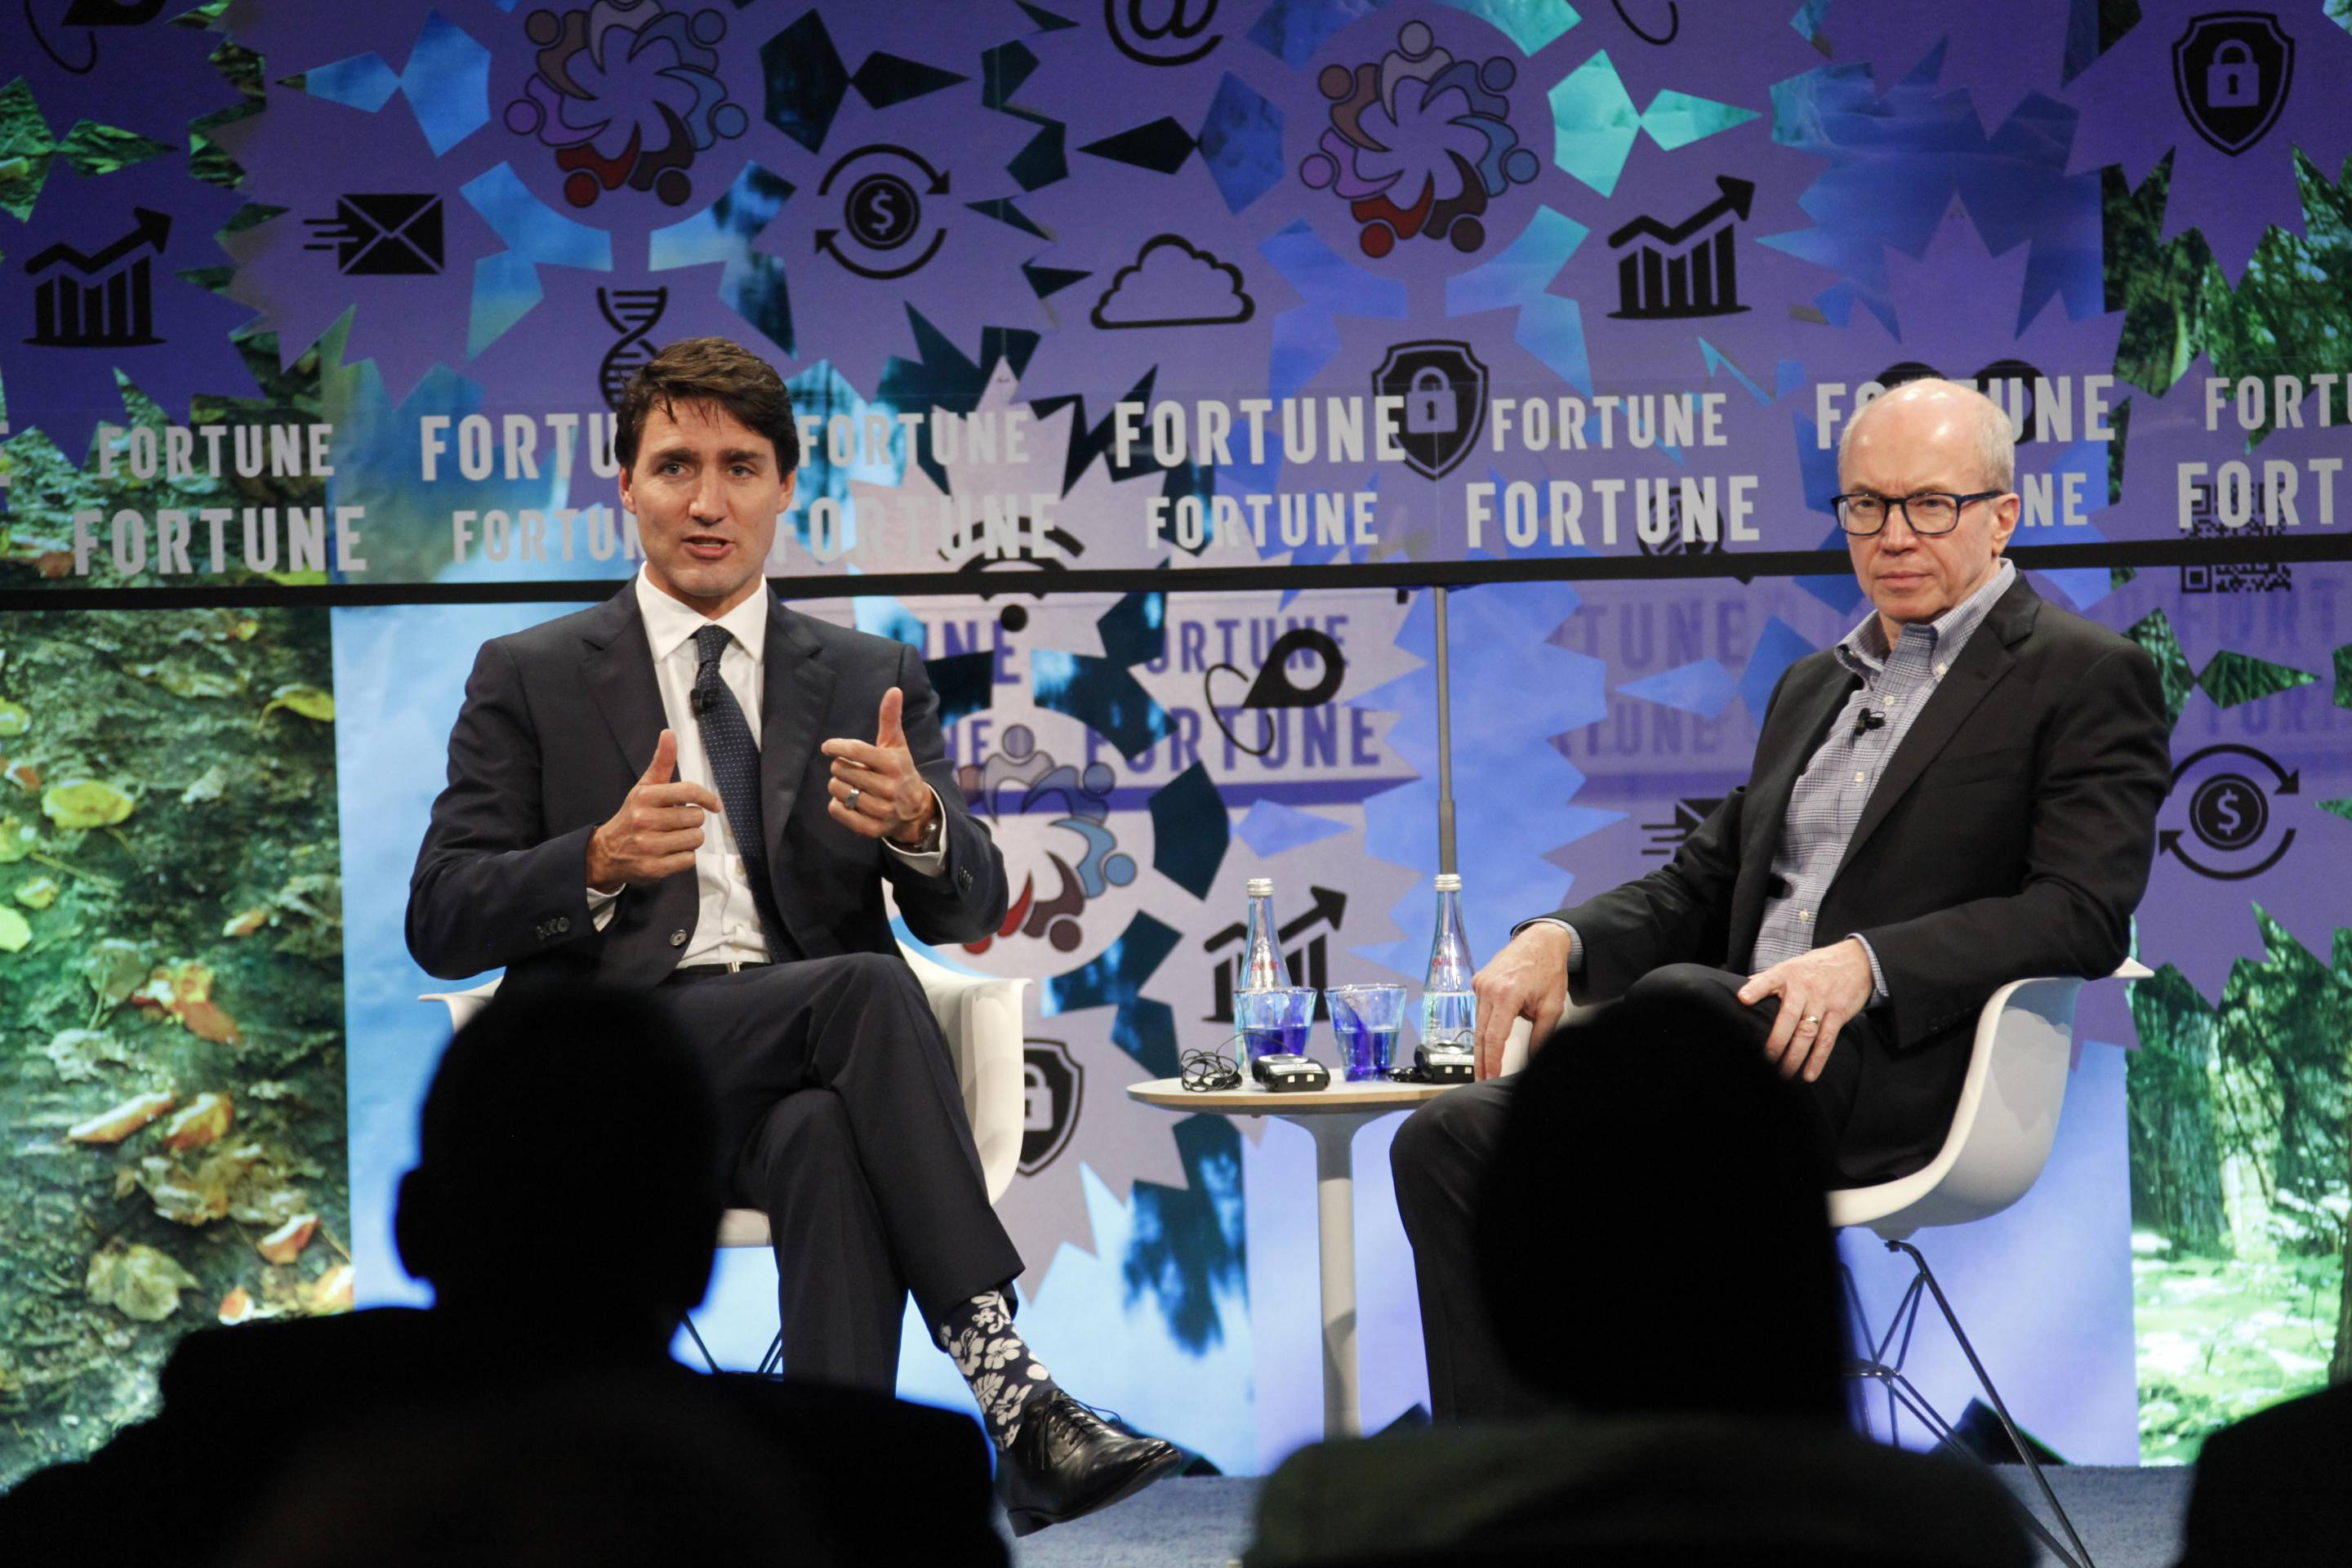 Canada's Prime Minister Justin Trudeau (L) receives an interview from Fortune CEO Alan Murray during last year's Fortune Global Forum.